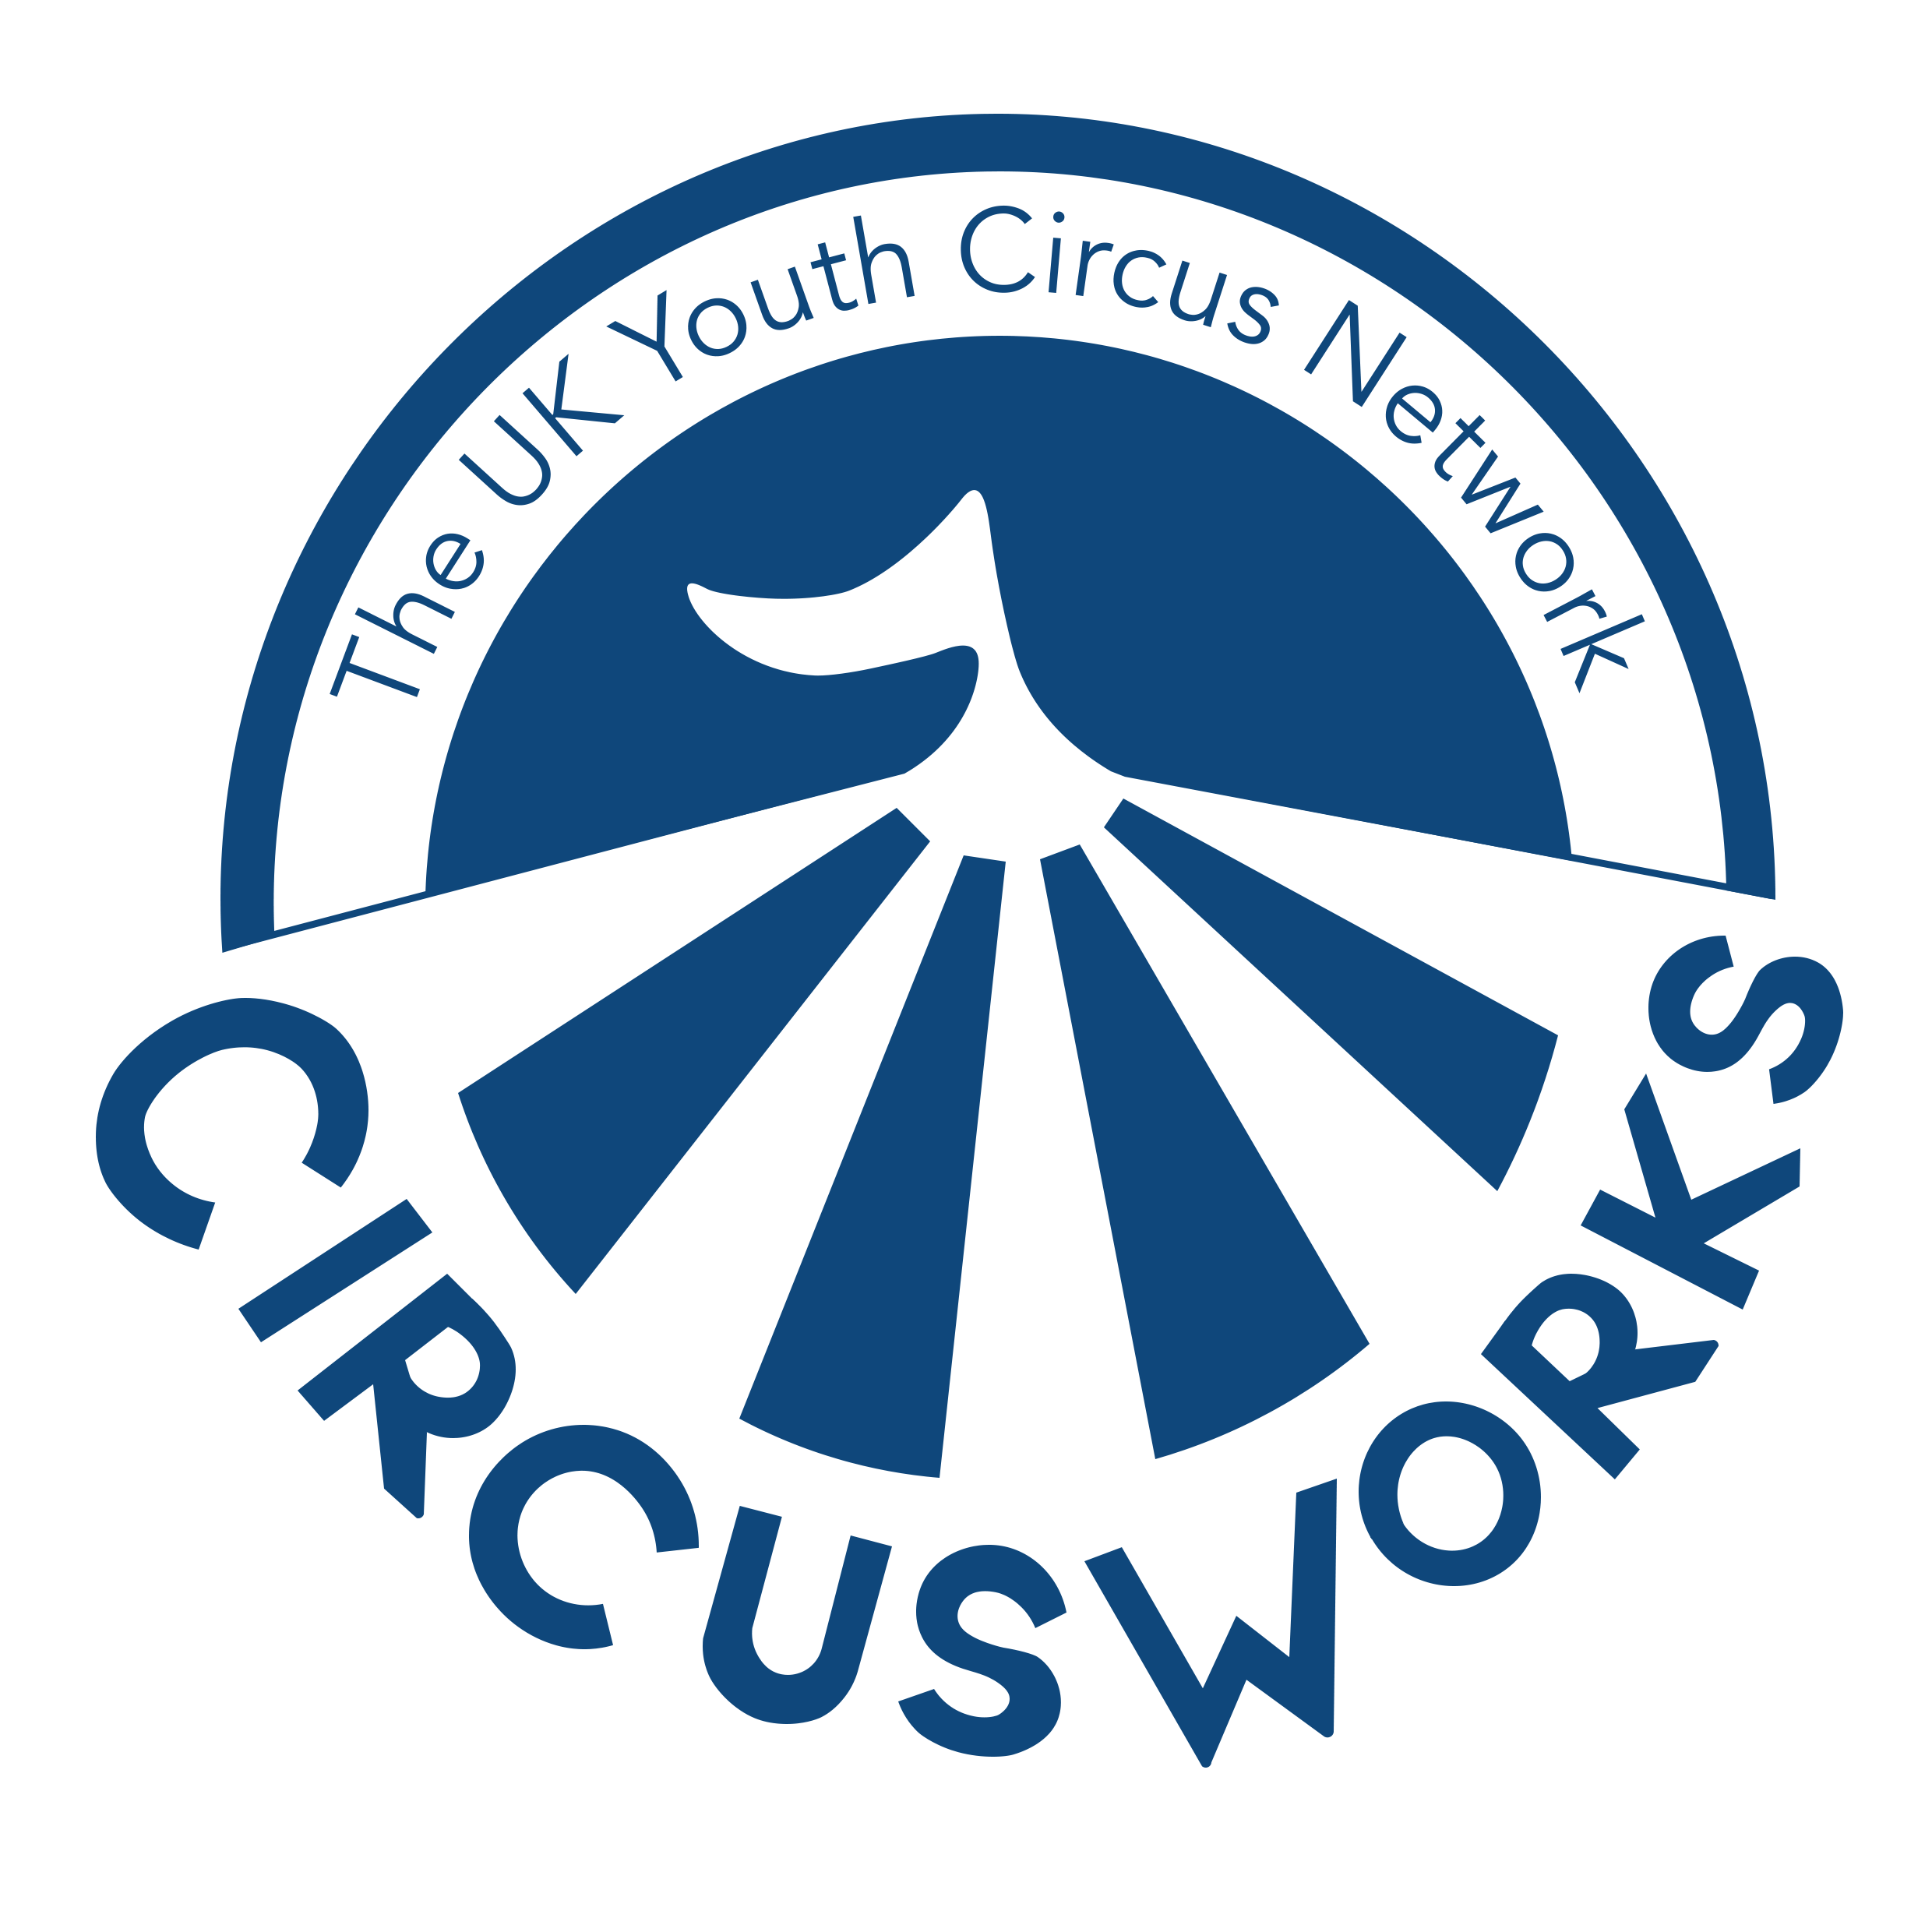 CircusWorks - The UK Youth Circus Network